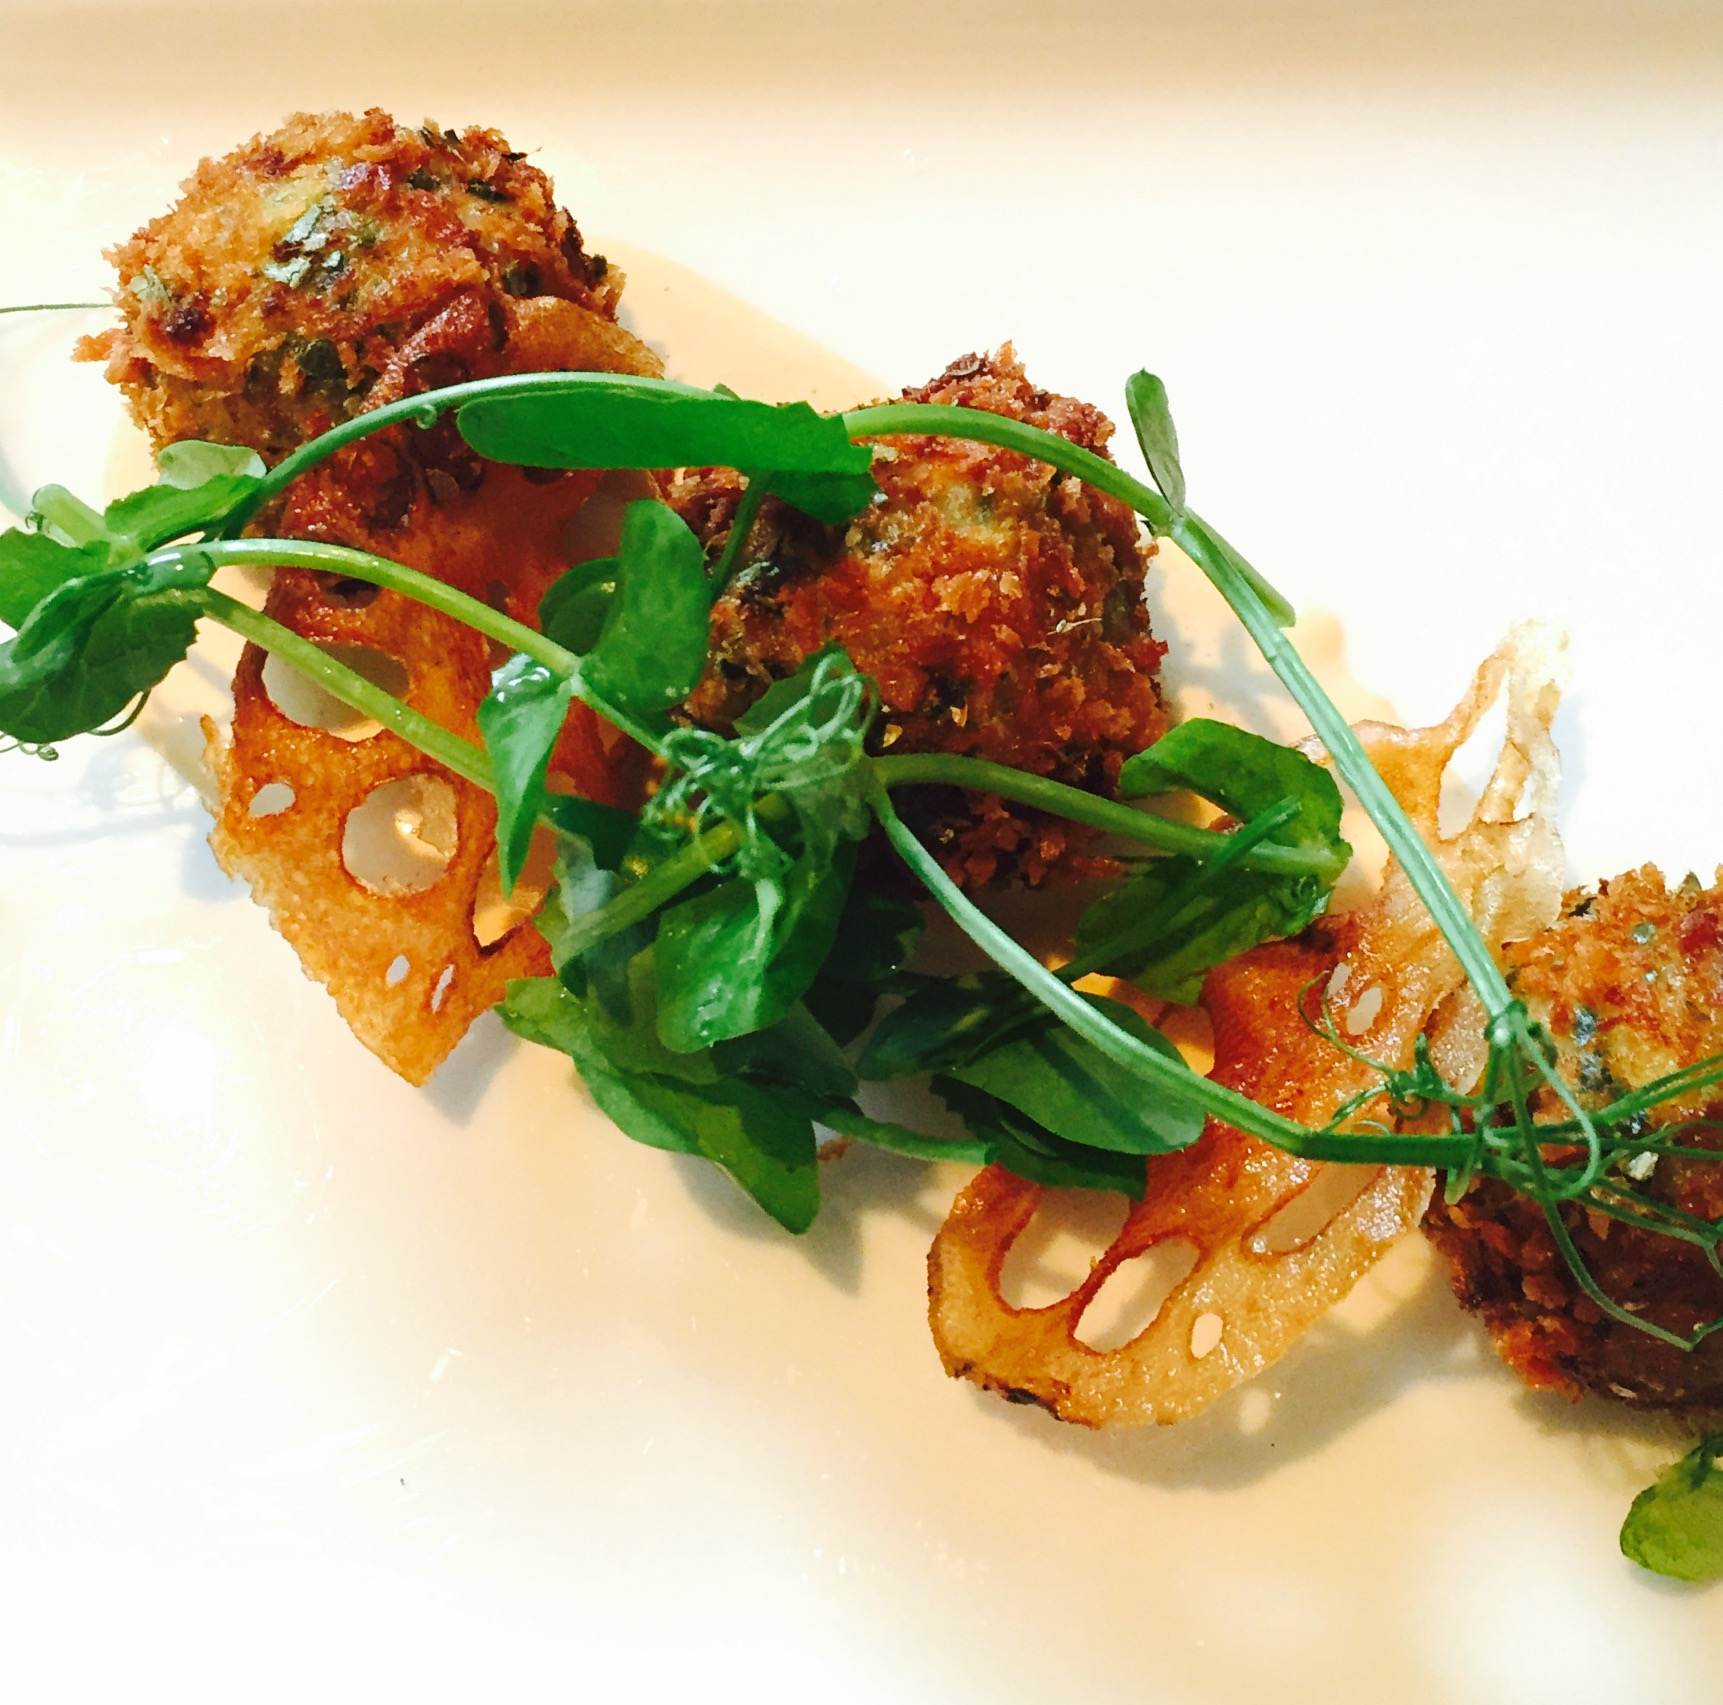 The cornwall crab cakes